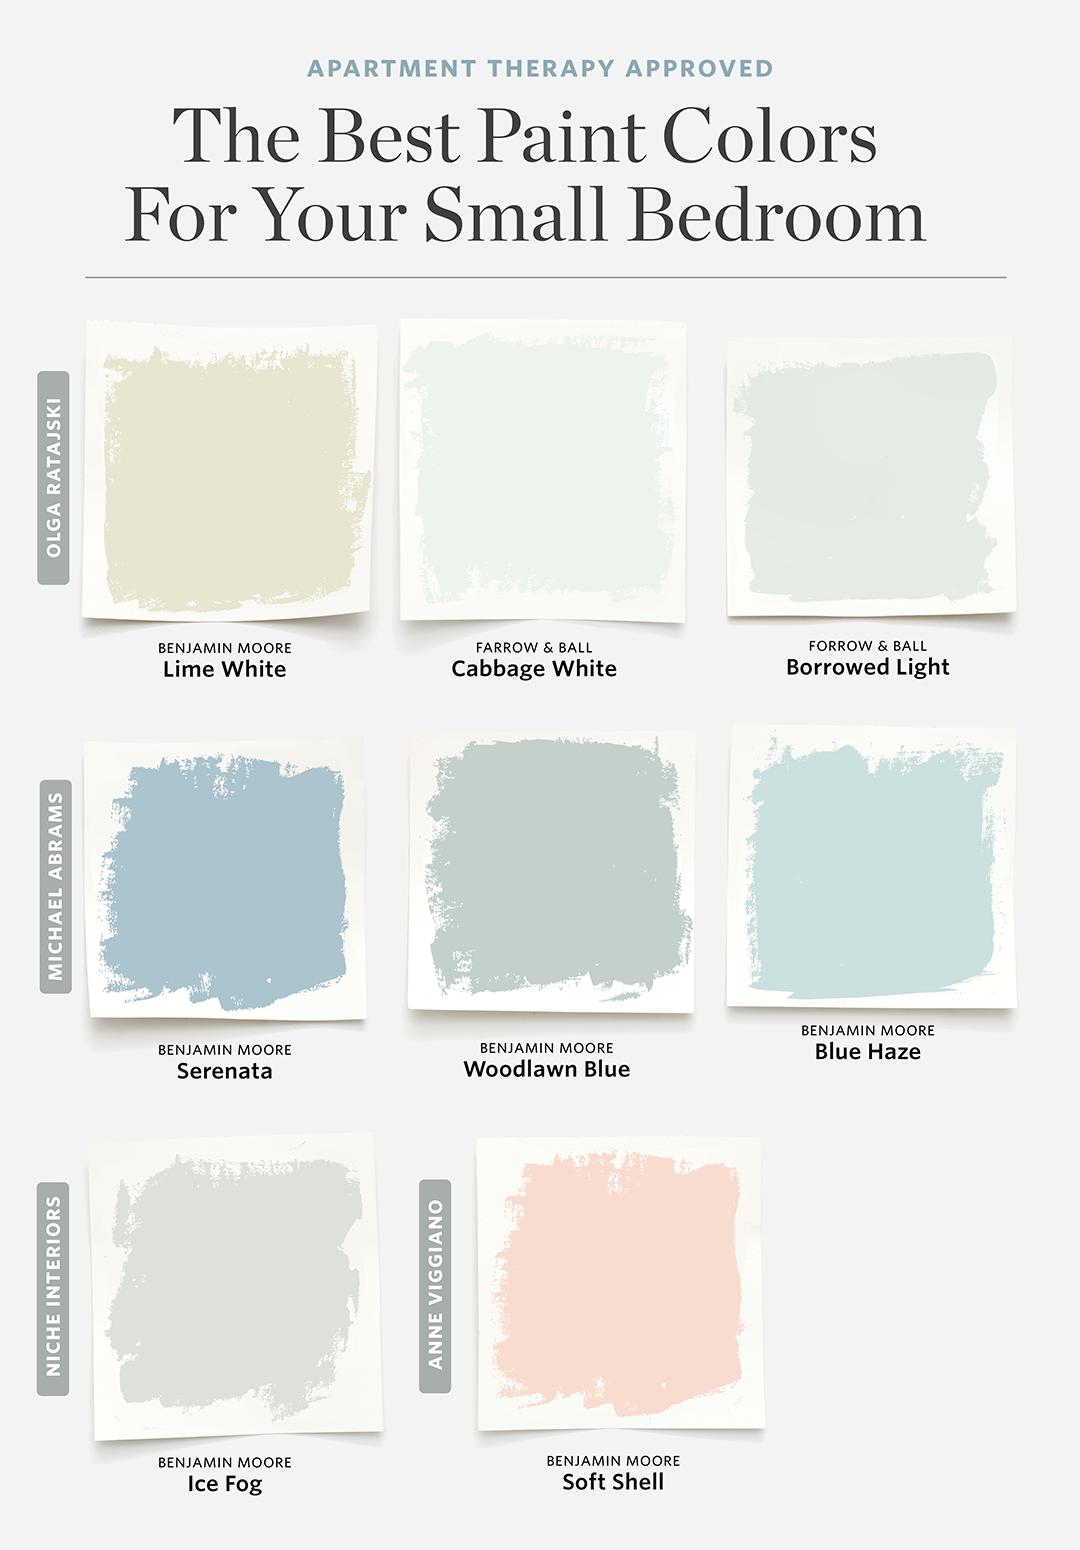 8 Paint Colors That Always Work For A